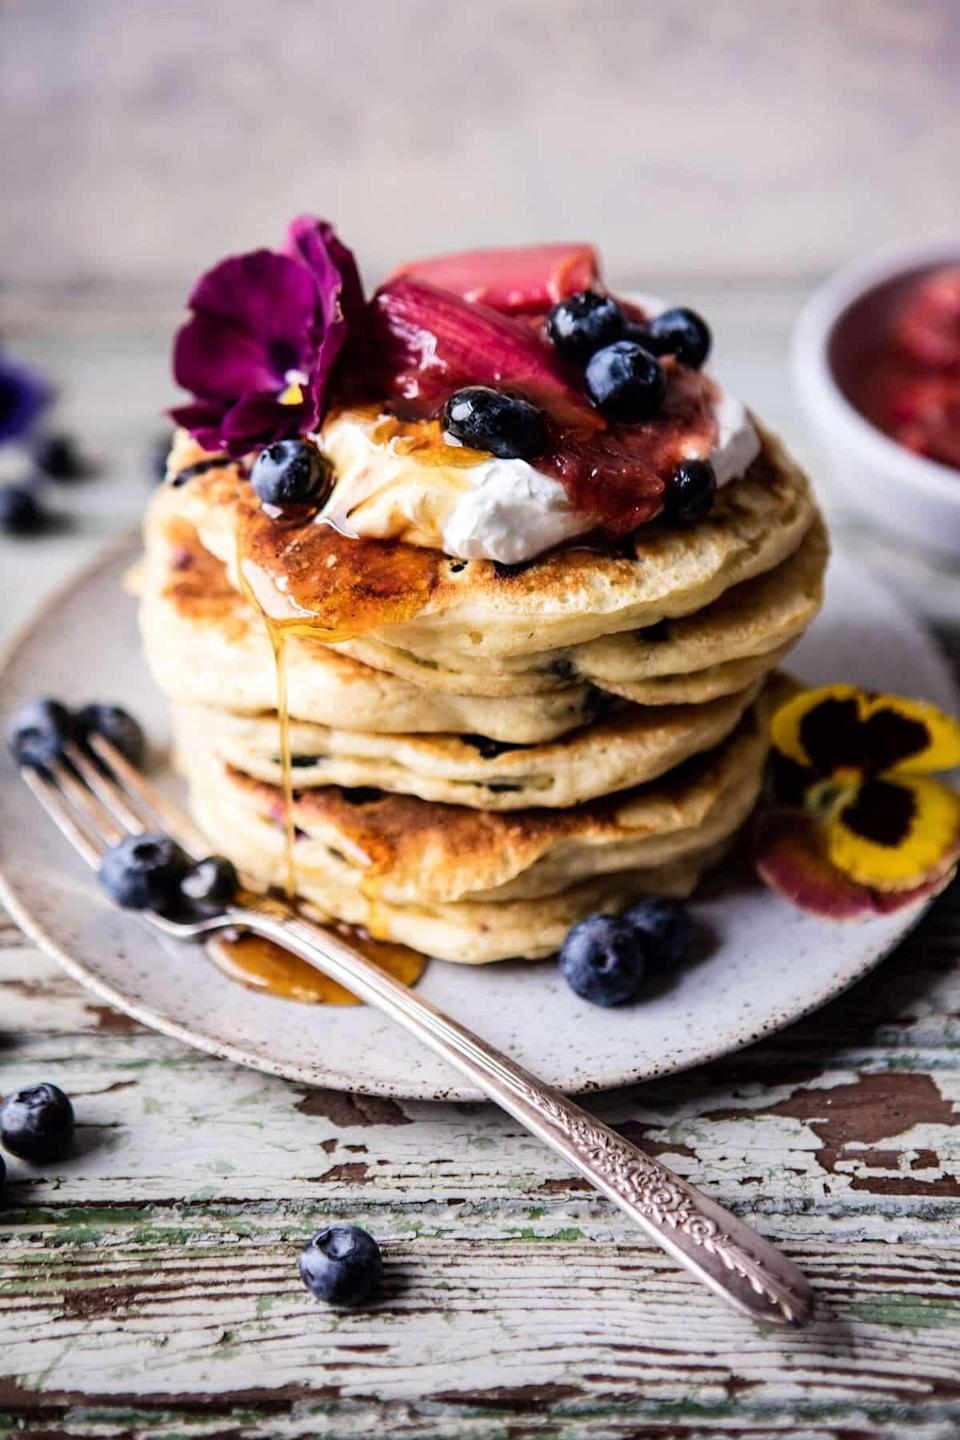 "<p>Take breakfast to a place it has never been before with this pancake recipe. The hearty almond flavor pairs effortlessly with the tart blueberry taste, so all you need to do is add syrup.</p> <p><strong>Get the recipe:</strong> <a href=""https://www.halfbakedharvest.com/blueberry-almond-pancakes/"" class=""link rapid-noclick-resp"" rel=""nofollow noopener"" target=""_blank"" data-ylk=""slk:blueberry almond pancakes"">blueberry almond pancakes</a></p>"